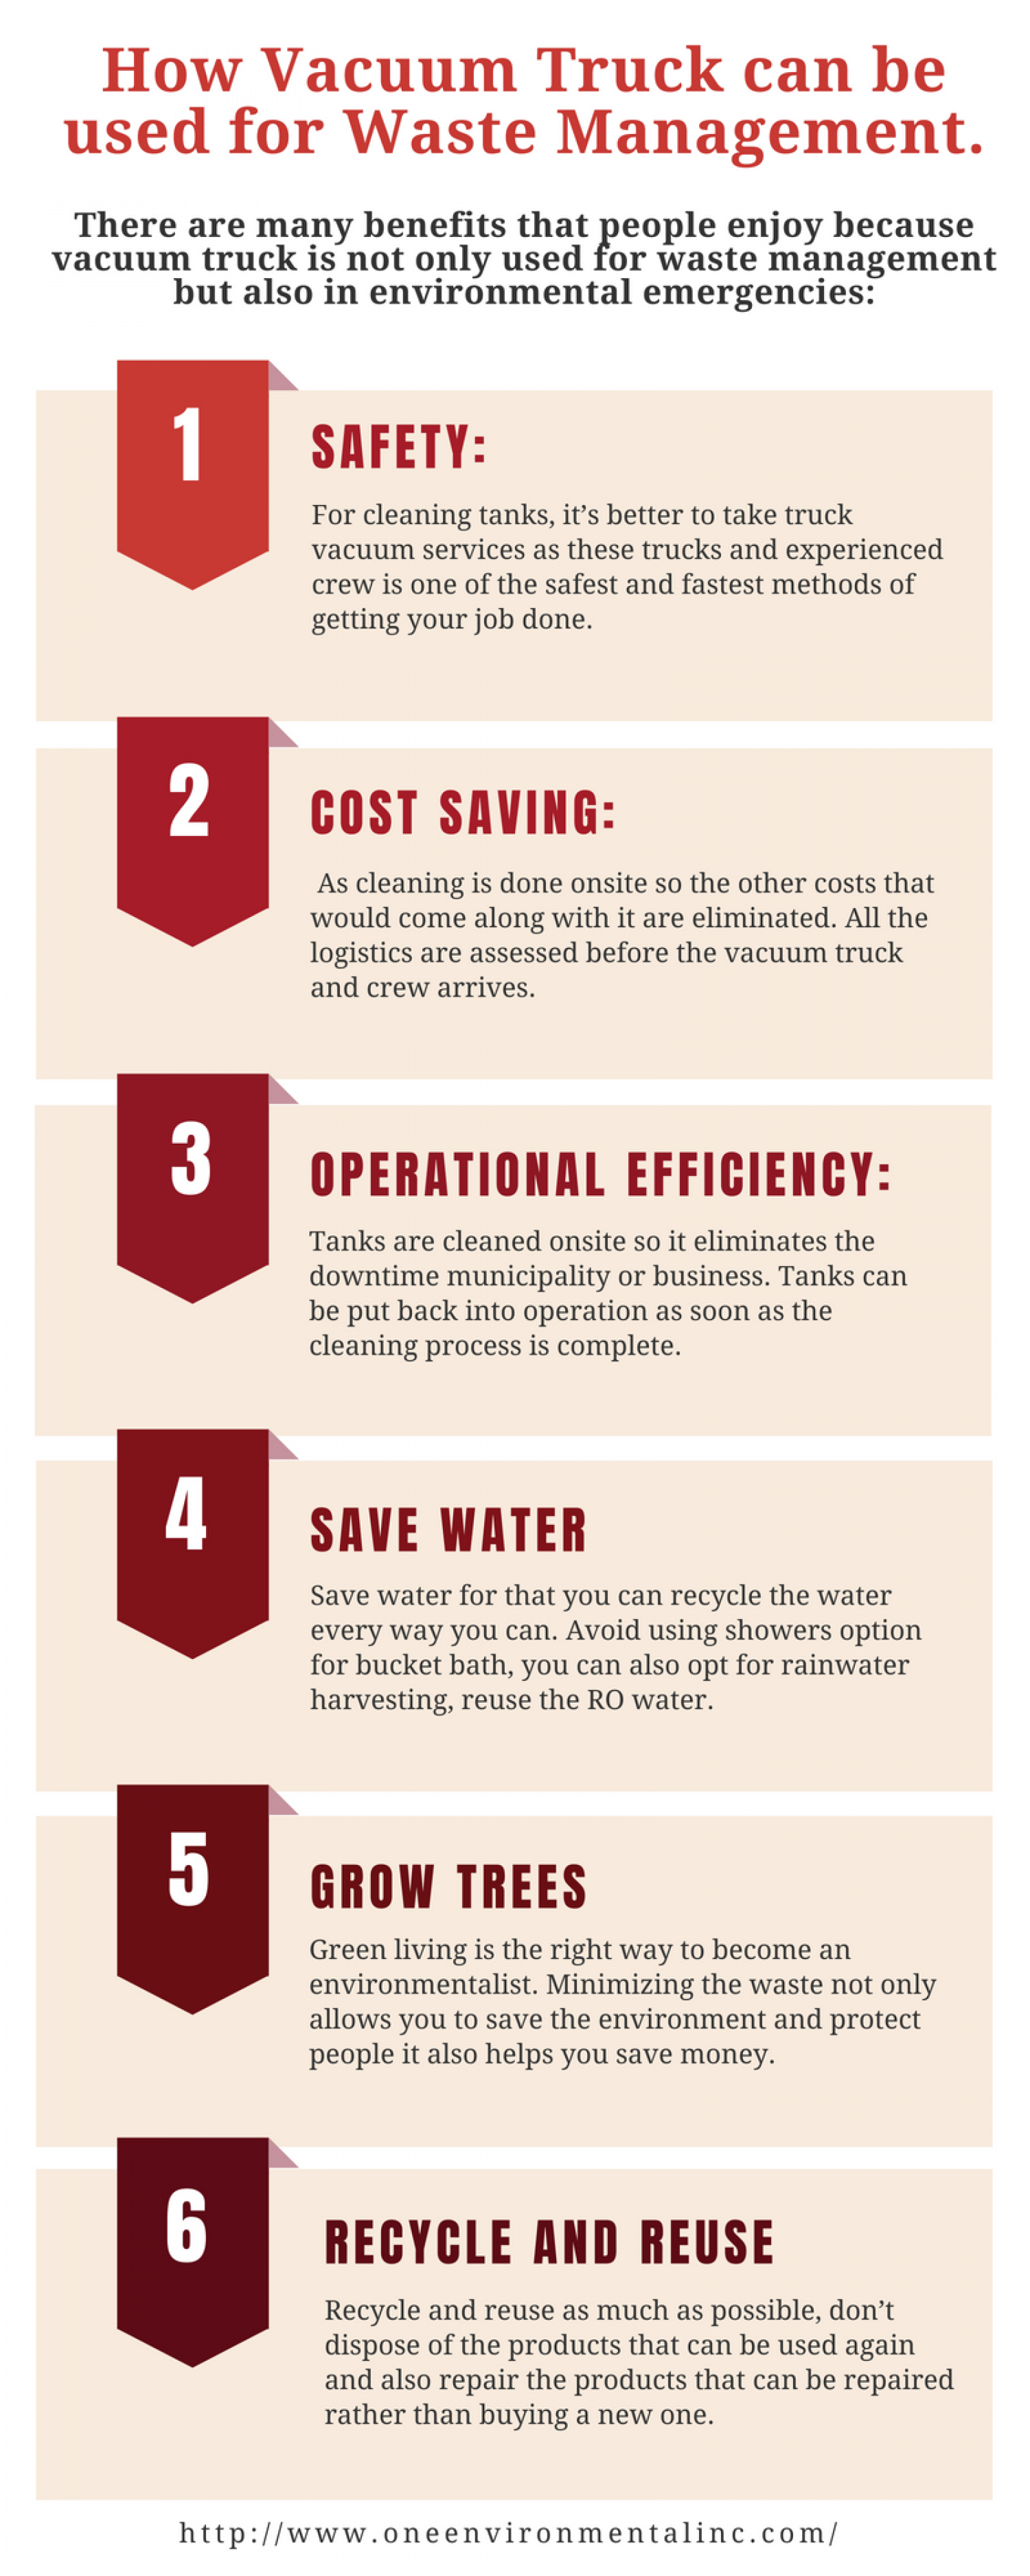 How Vacuum Truck can be used for Waste Management. Infographic